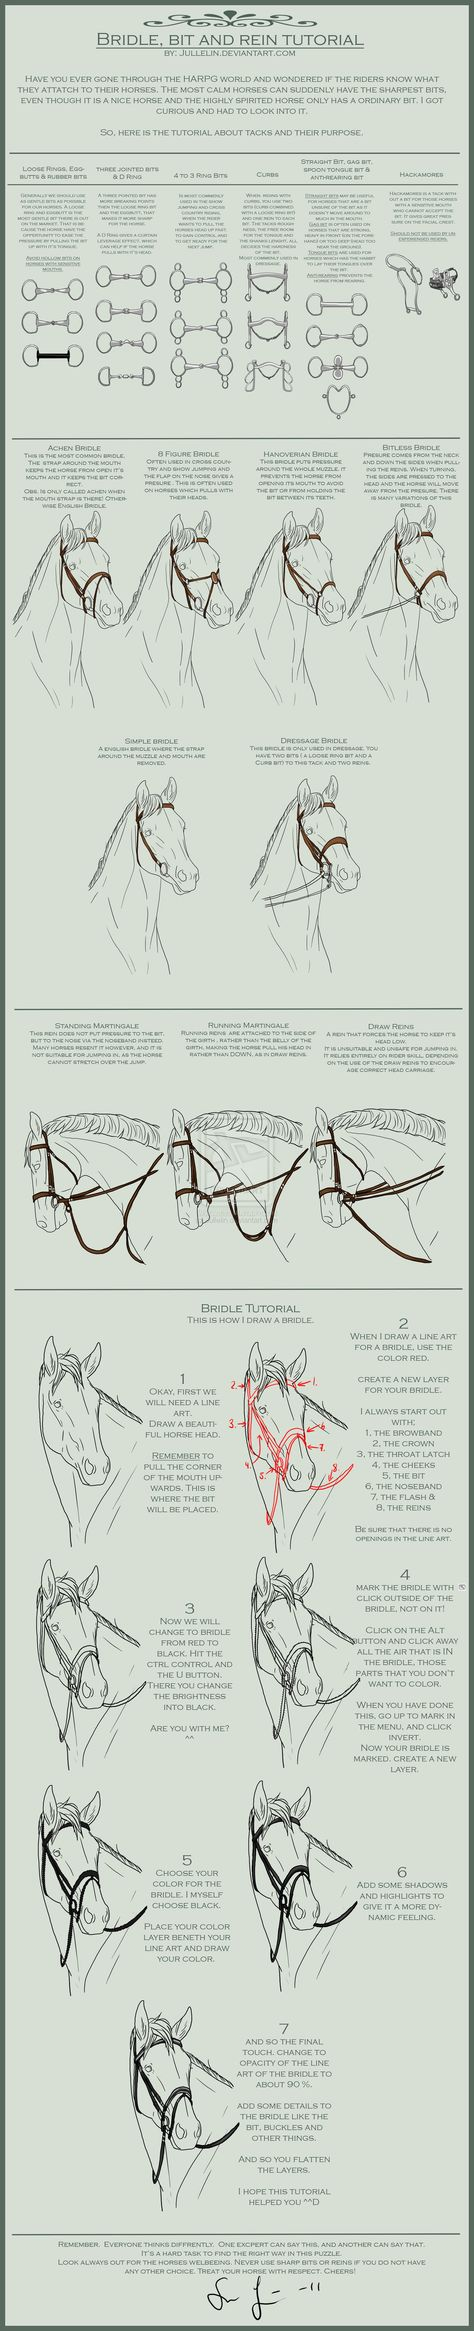 Bridle, Bit and Reins, for Horse Bowl :)